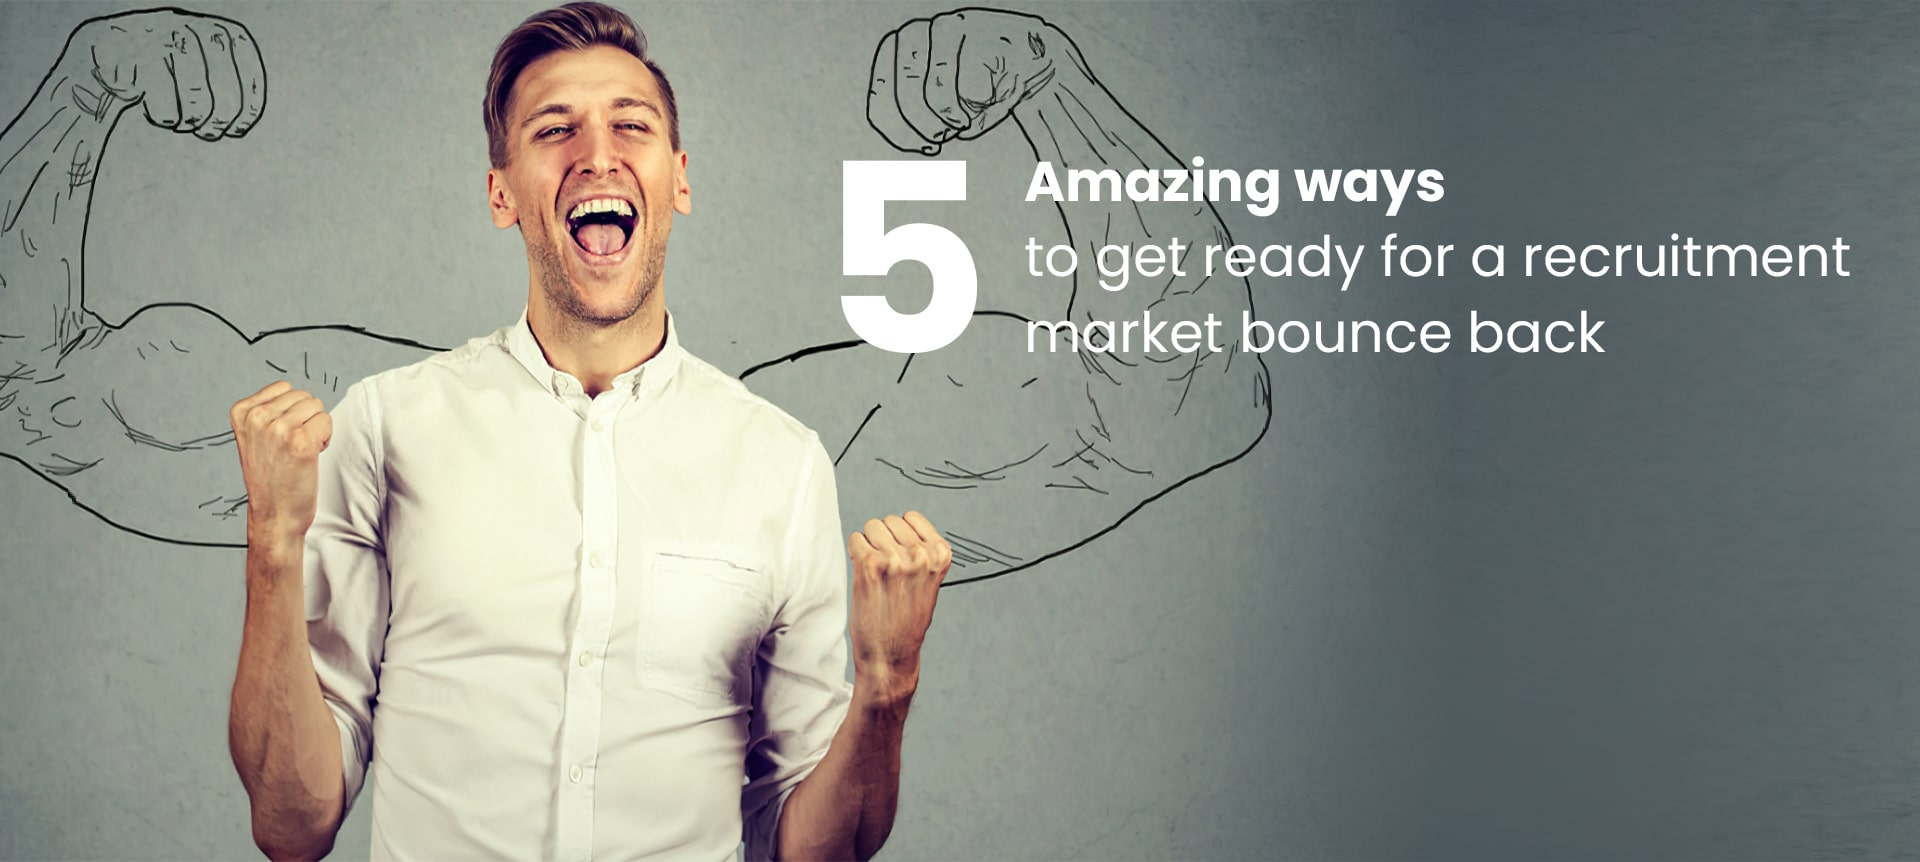 A hiring manager looking excited for a recruitment market bounce-back